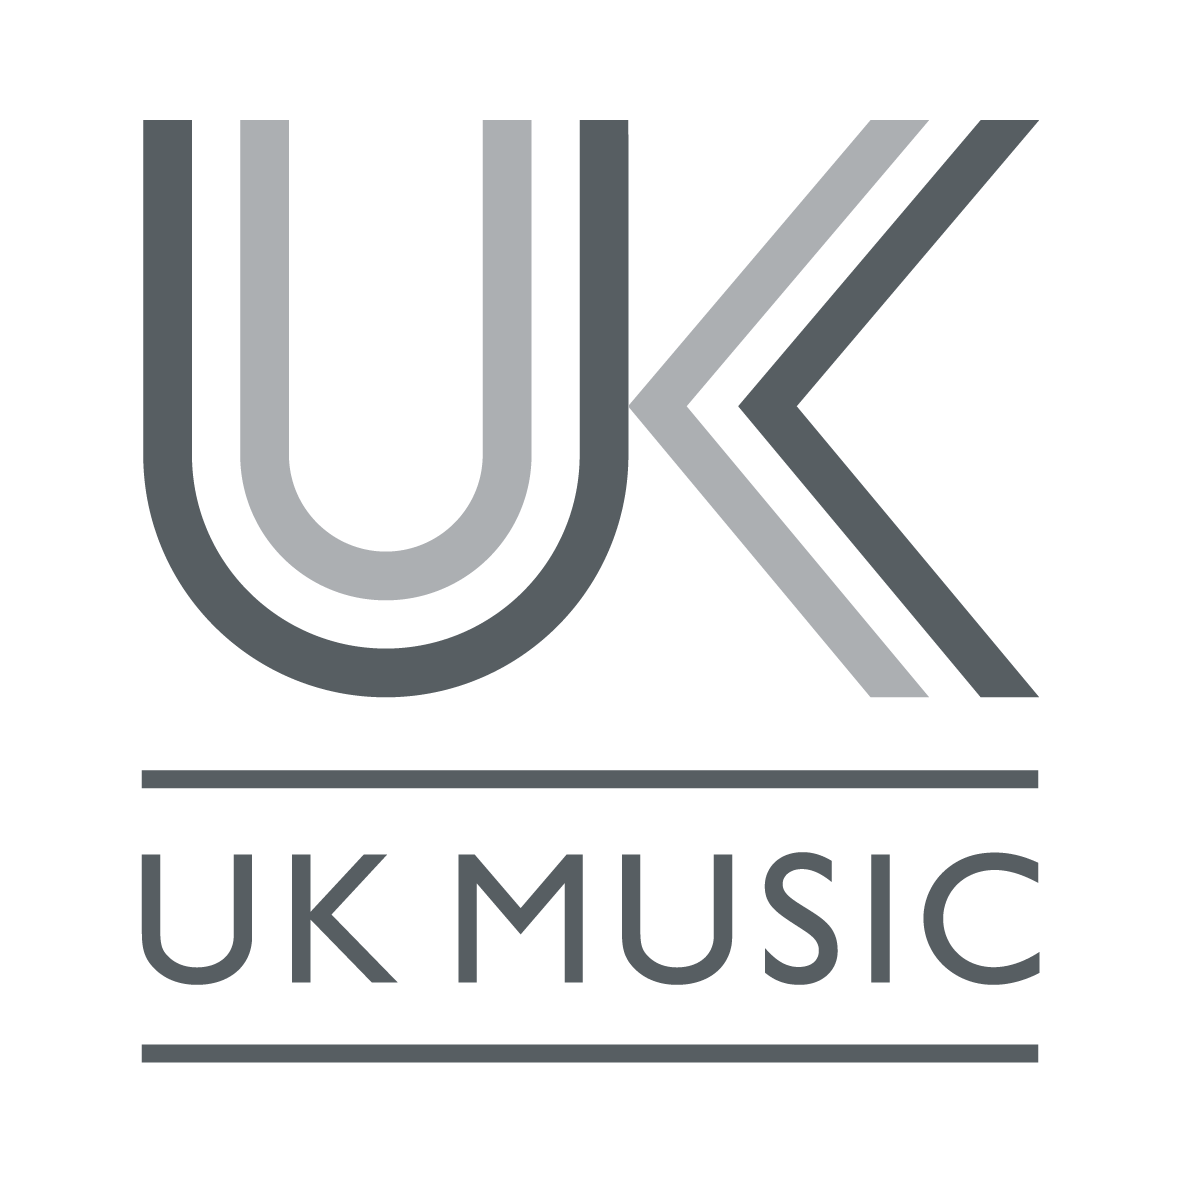 UK MUSIC    UK Music represents the collective interests of the recorded, published and live arms of the British music industry. It promotes the interests of record labels and music publishers (major and independent), songwriters, composers, lyricists, musicians, managers, producers, promoters, venues and collection societies.   Website  |  Facebook  |  Twitter